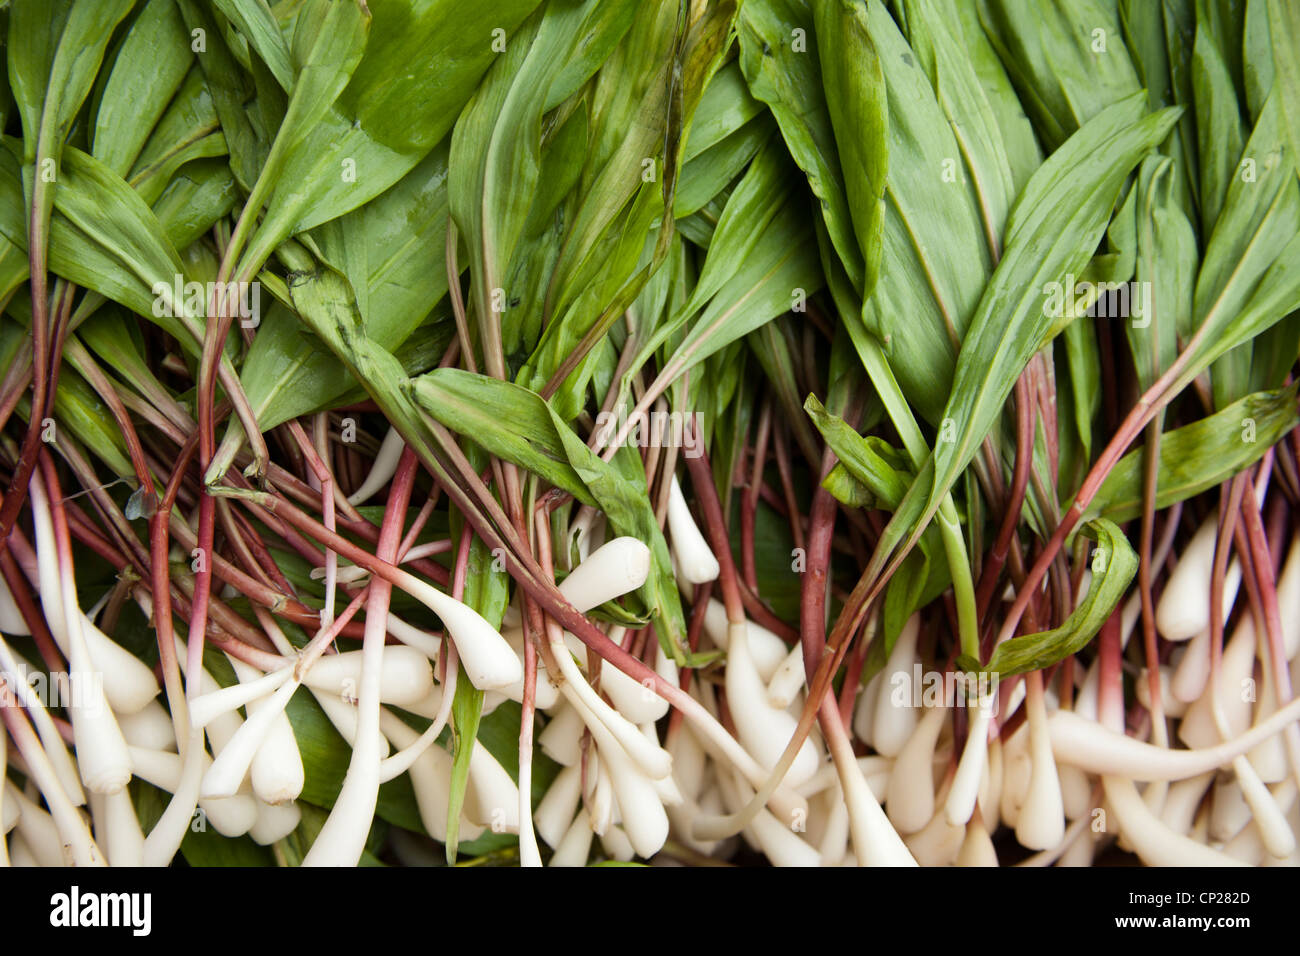 Ramps also known as Wild Leeks, Richwood, West Virginia, USA Appalachia - Stock Image